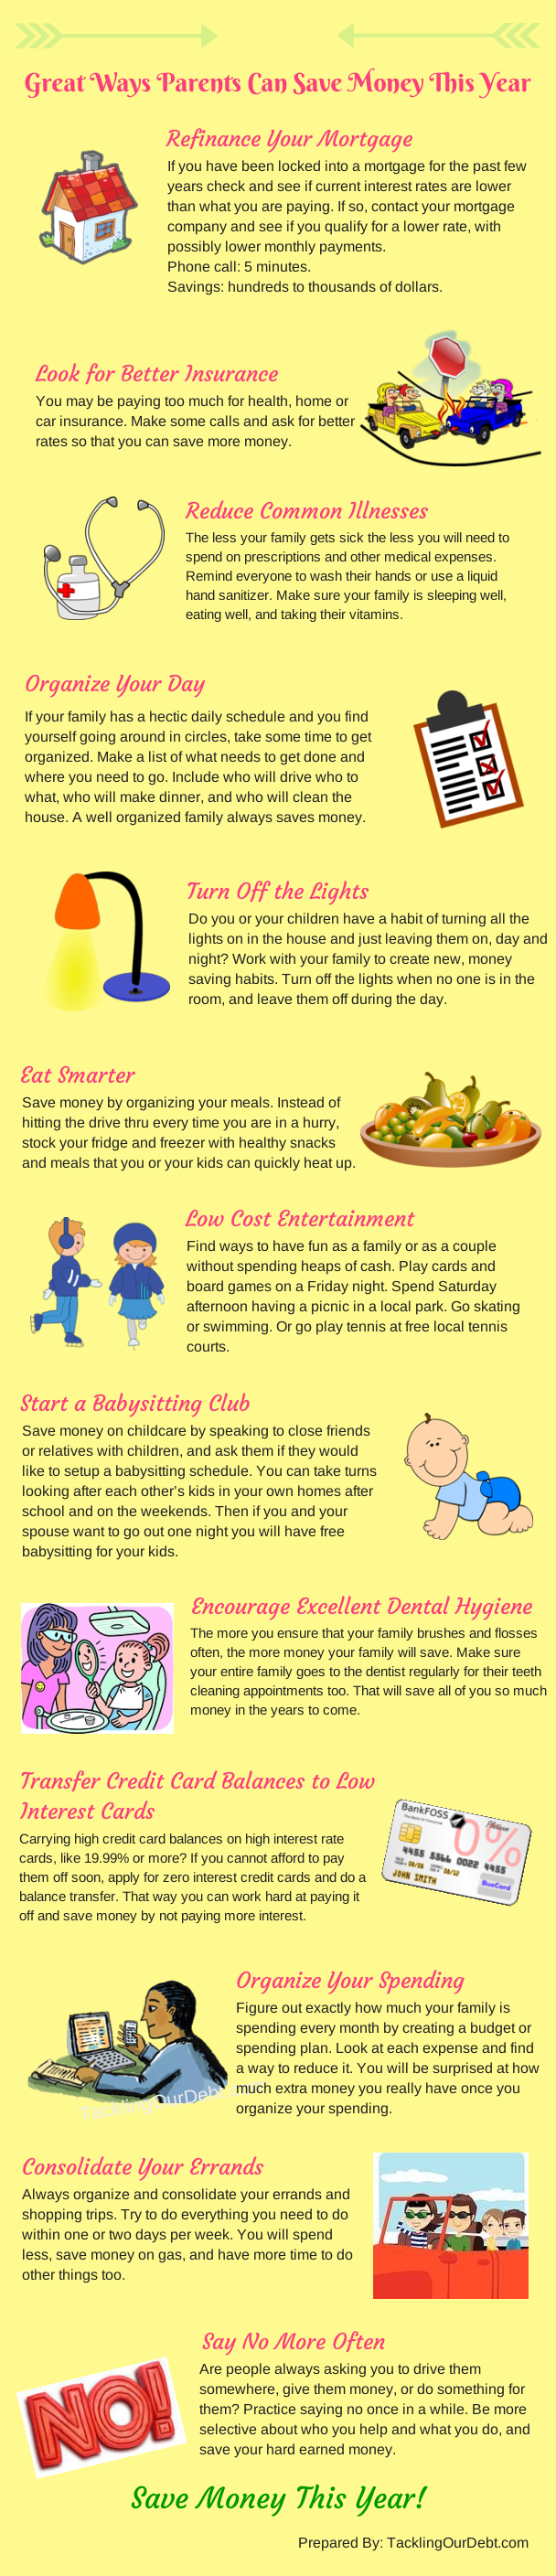 Infographic Great Ways Parents Can Save Money This Year